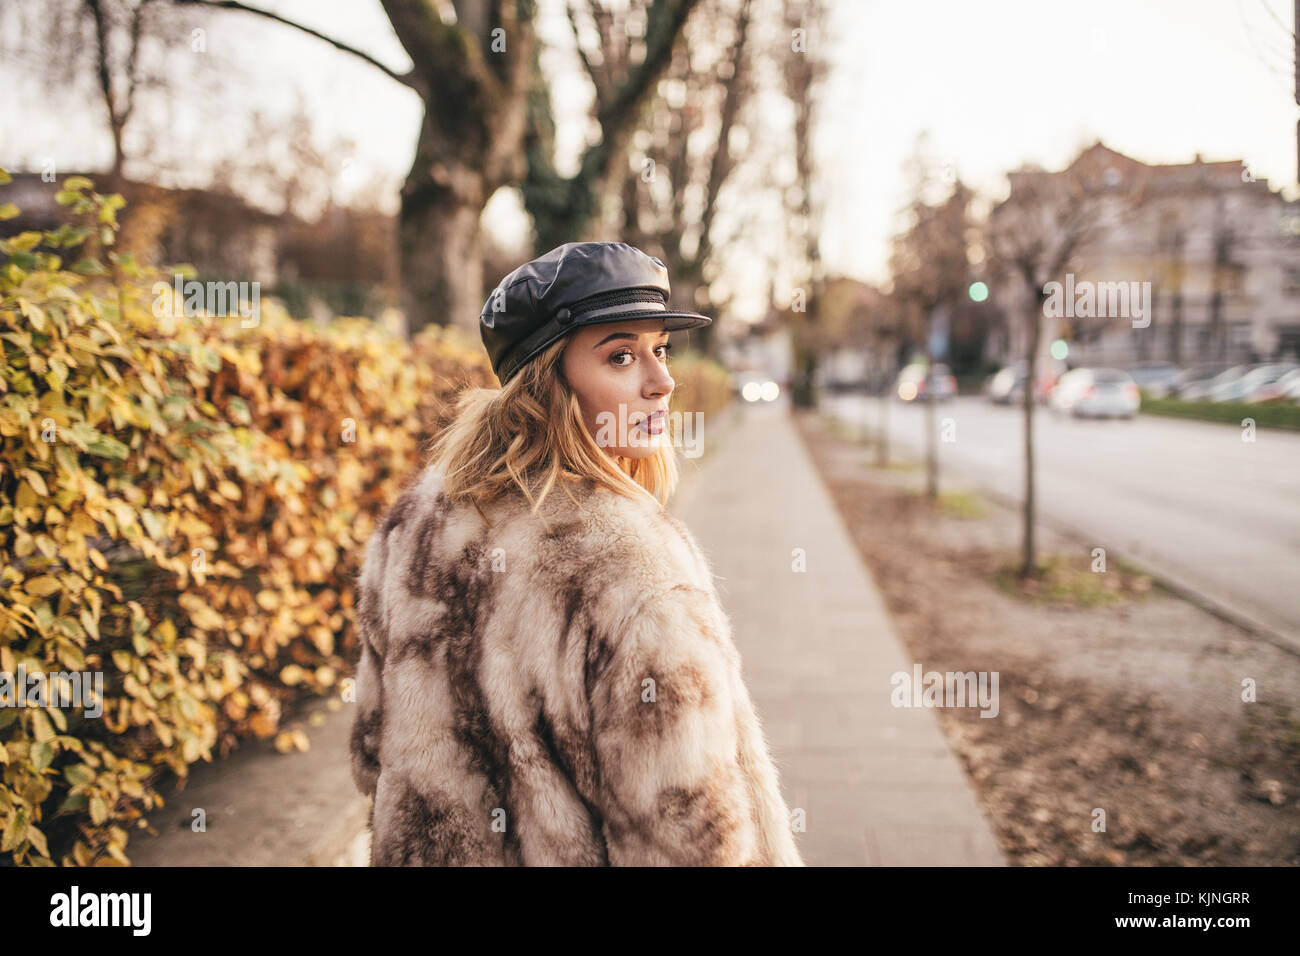 Beautiful girl wearing fur and riding her bike on the city streets - Stock Image